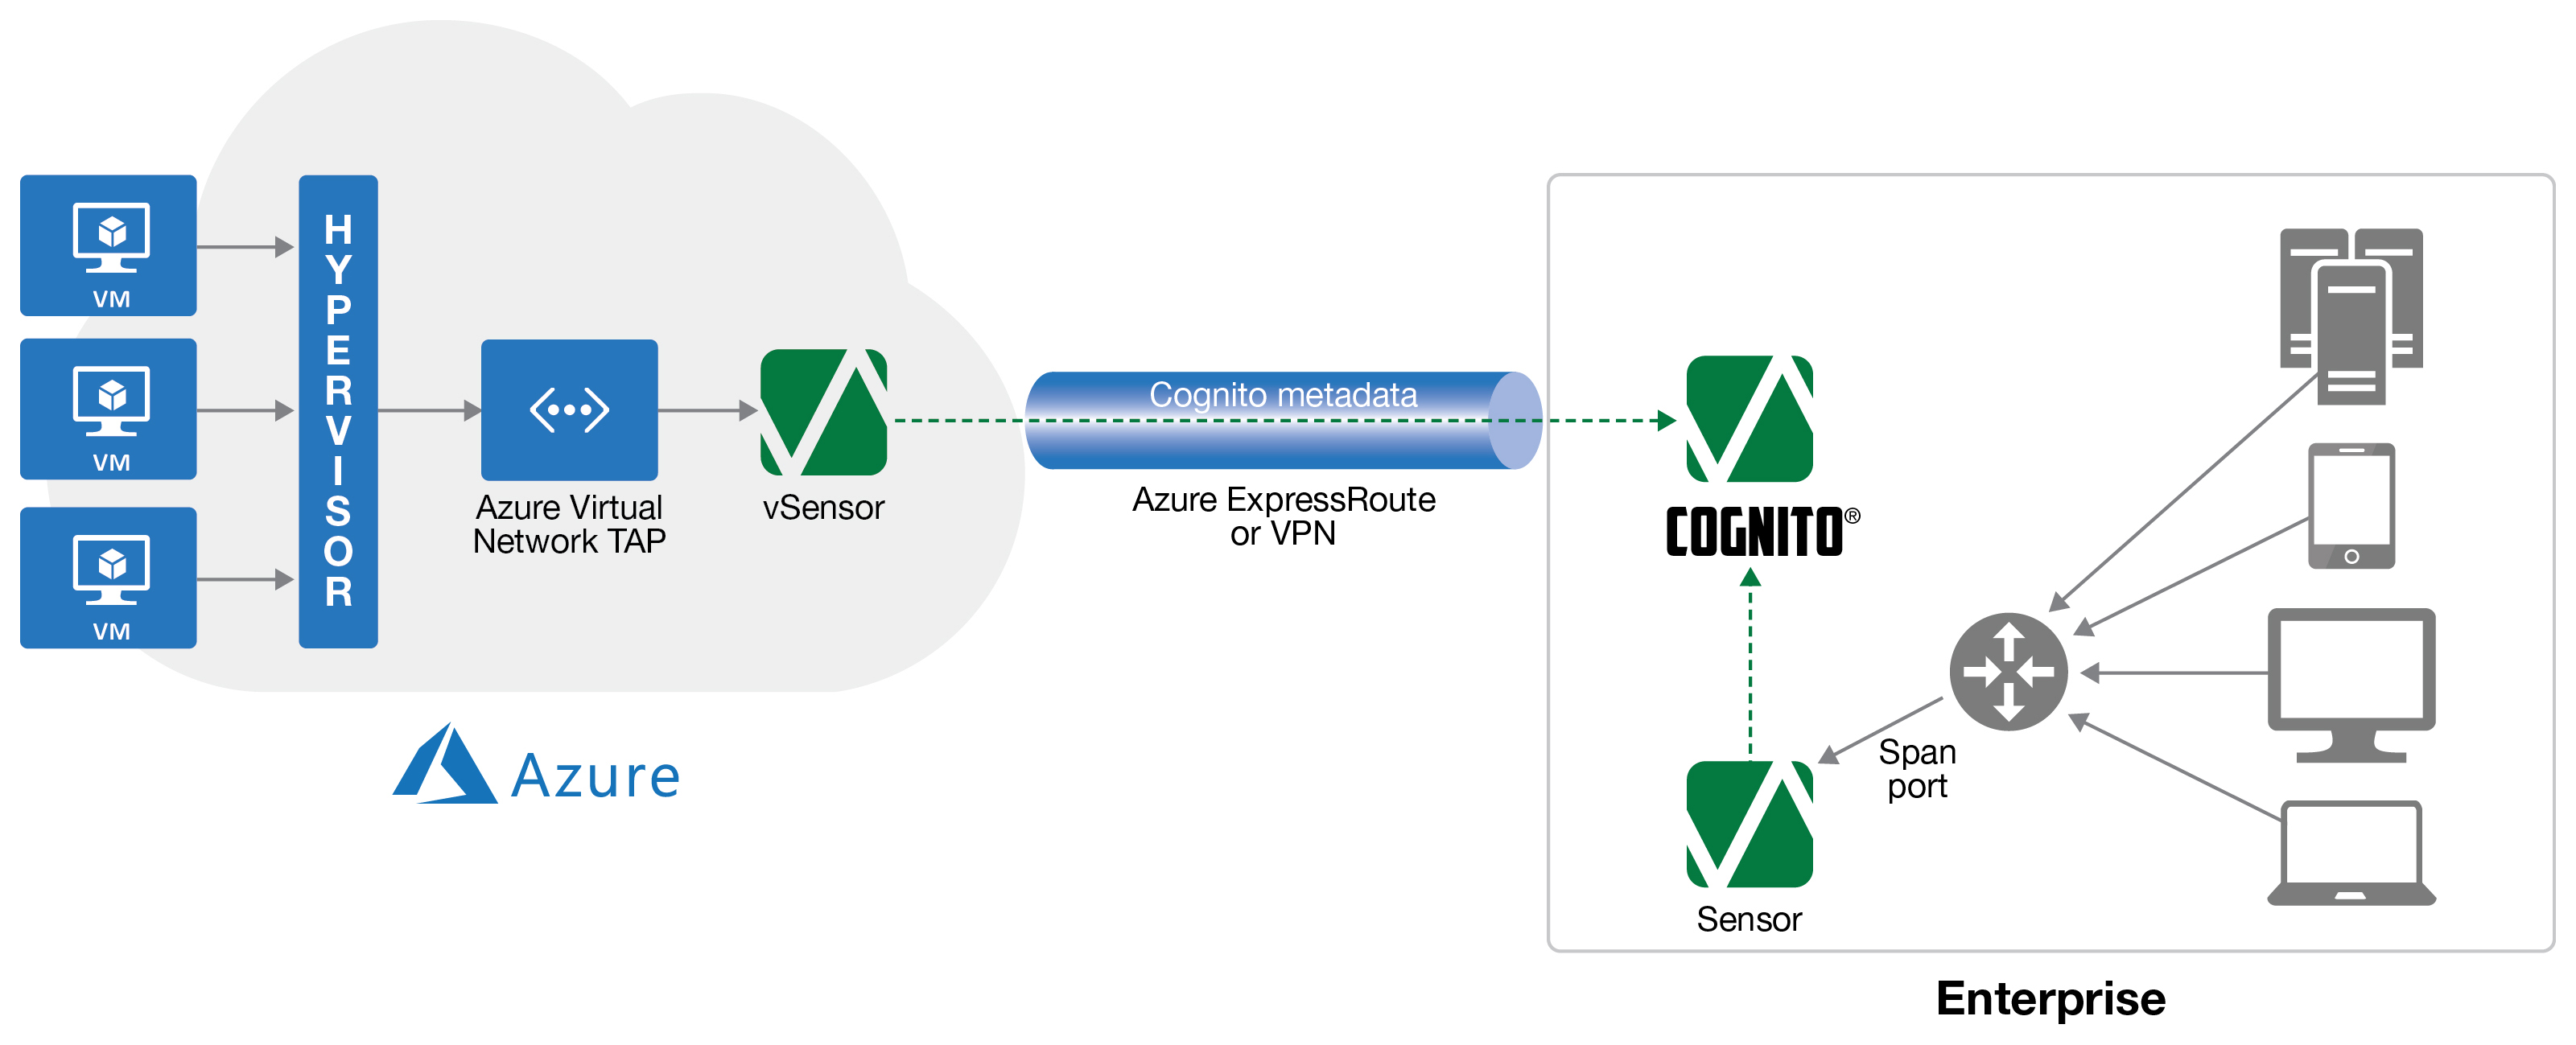 The Azure Virtual Network TAP will capture traffic between workloads, making it available to Cognito vSensors running in the Azure cloud for analysis by the Cognito platform.